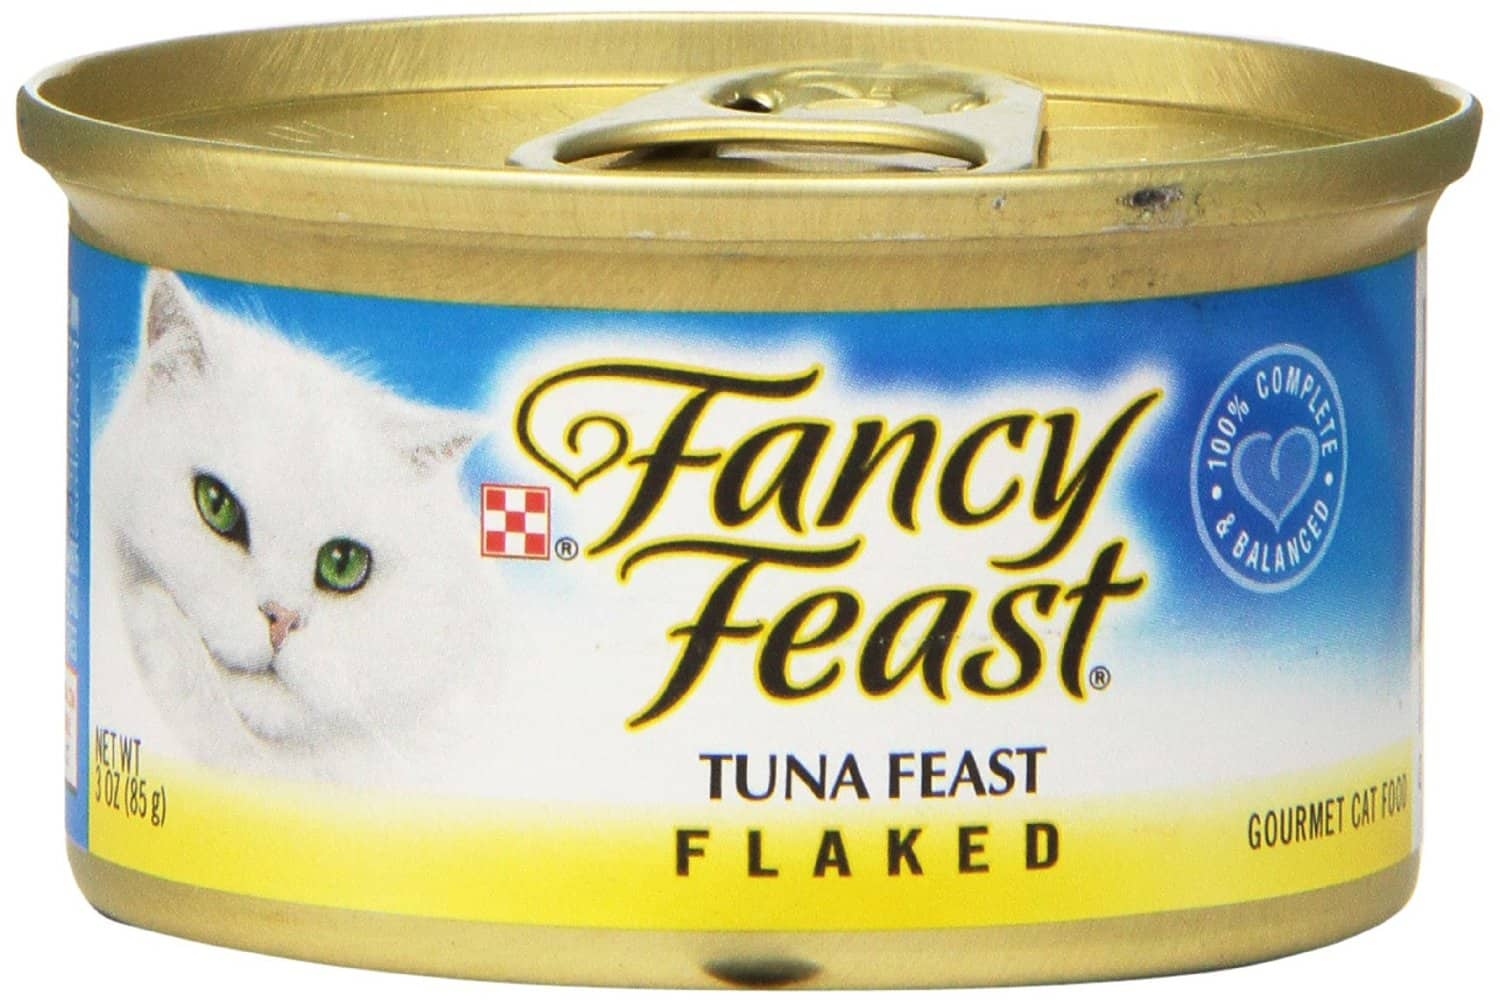 24-Pack of 3-oz Fancy Feast Cat Food (Tuna)  $9.60